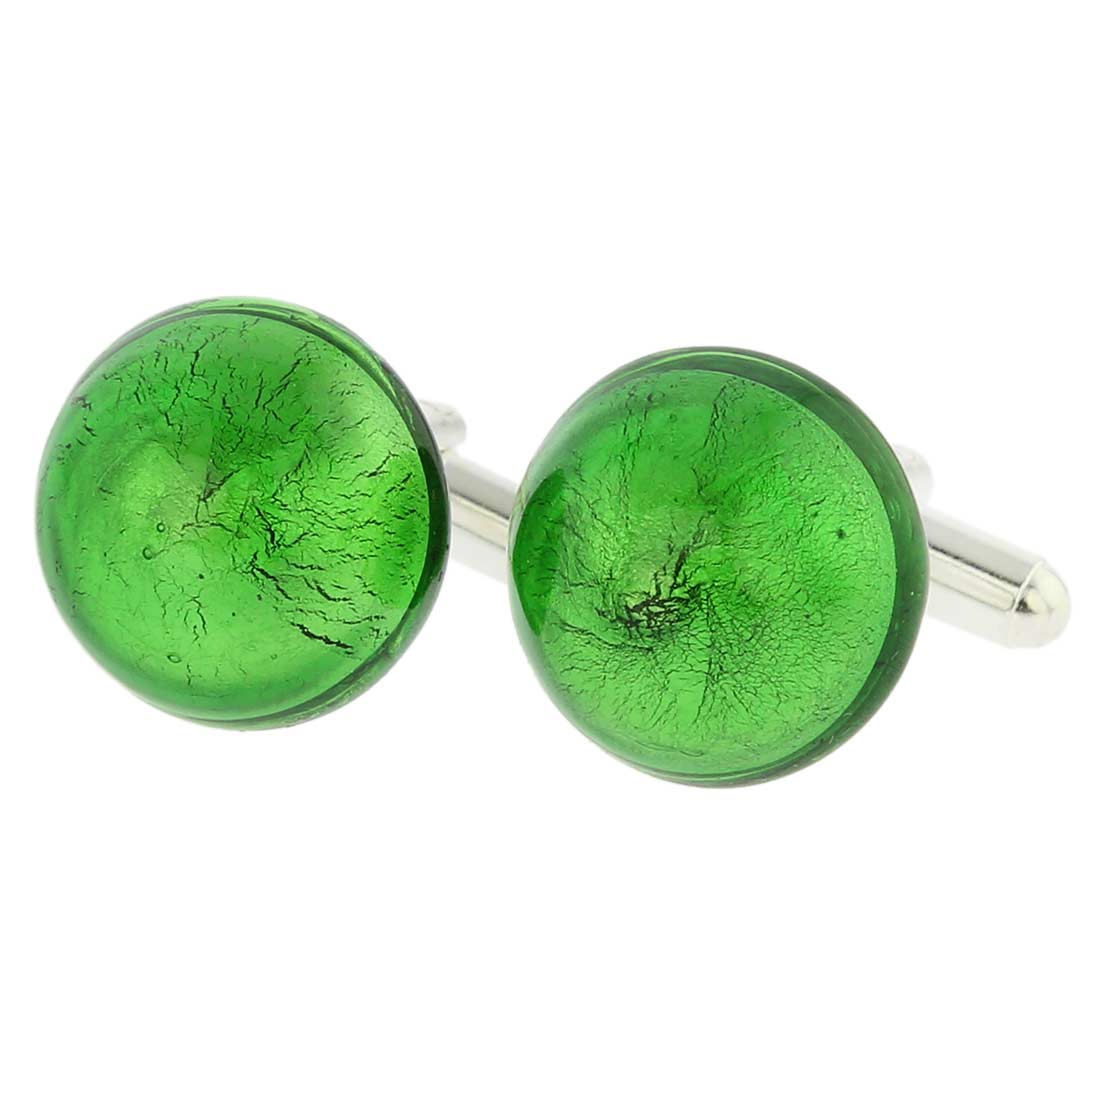 Venetian Dream Cufflinks - Emerald Green